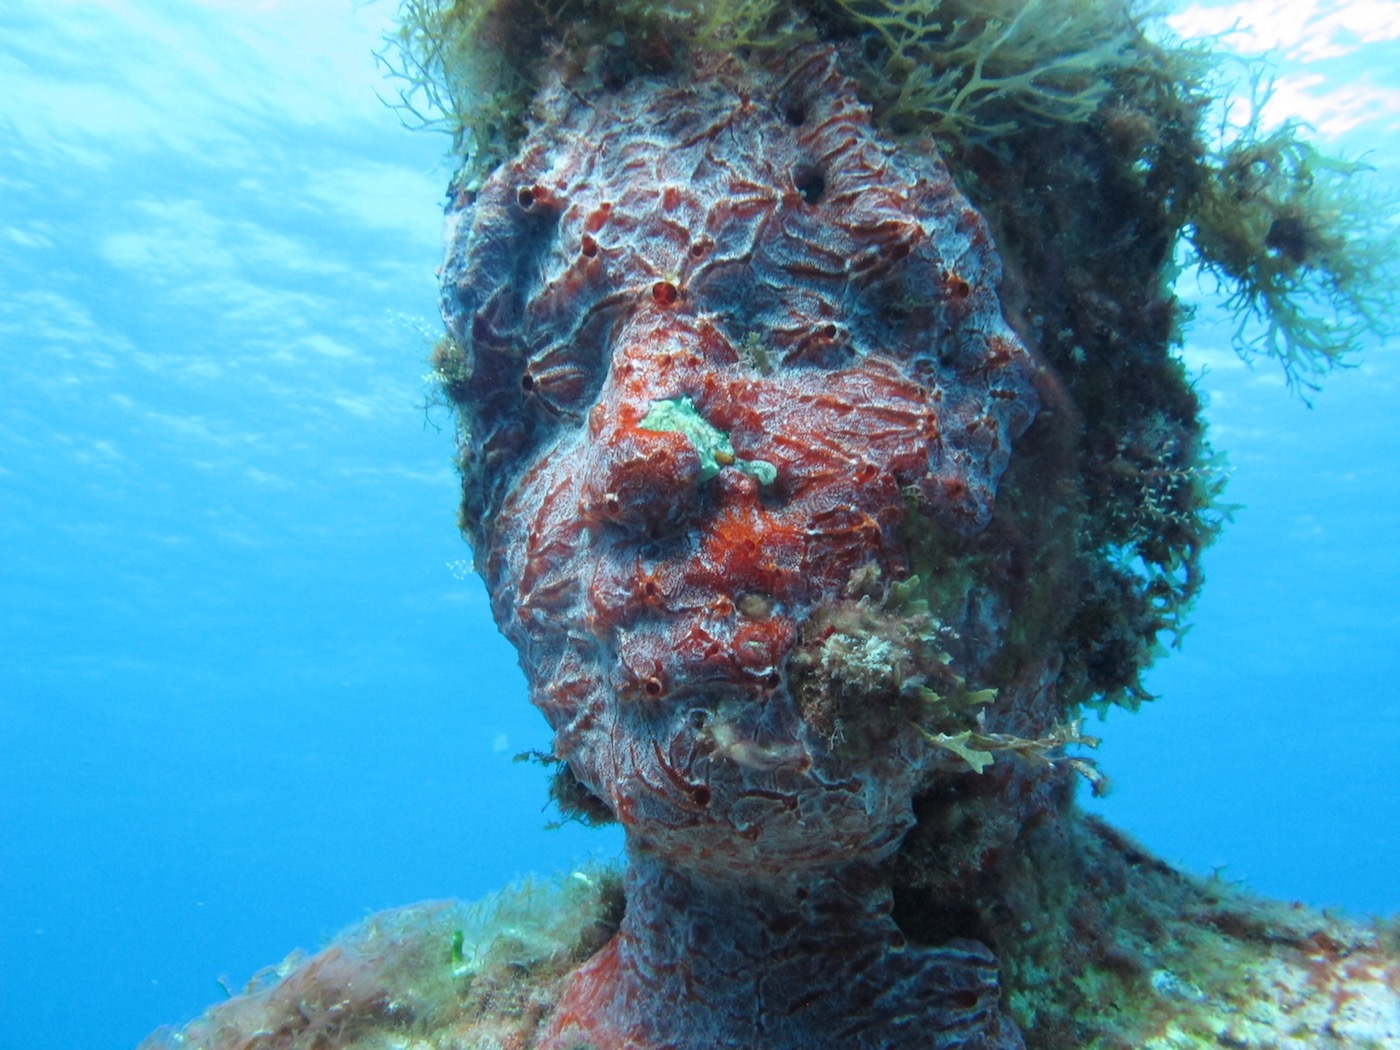 MUSA-Underwater-Museum-Snorkeling-Scuba-Diving-Tours-Isla-Mujeres-Carey-Dive-Center-15